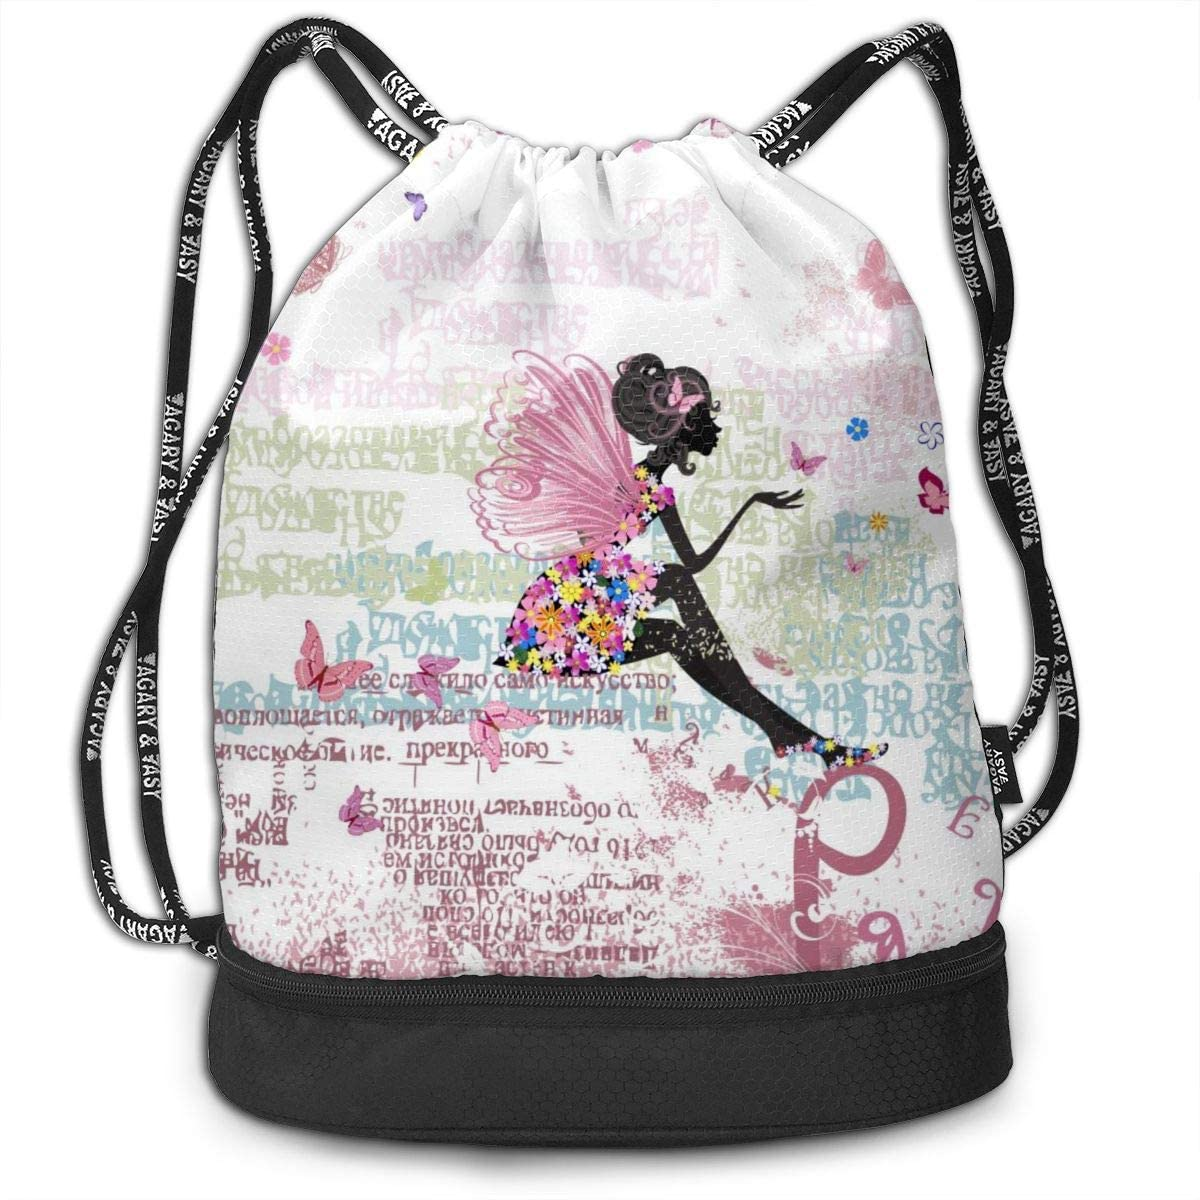 Bundle Backpacks Fairy On The Grunge Gym Sack Drawstring Bags Casual Daypack Yoga Bag School Training Pouch